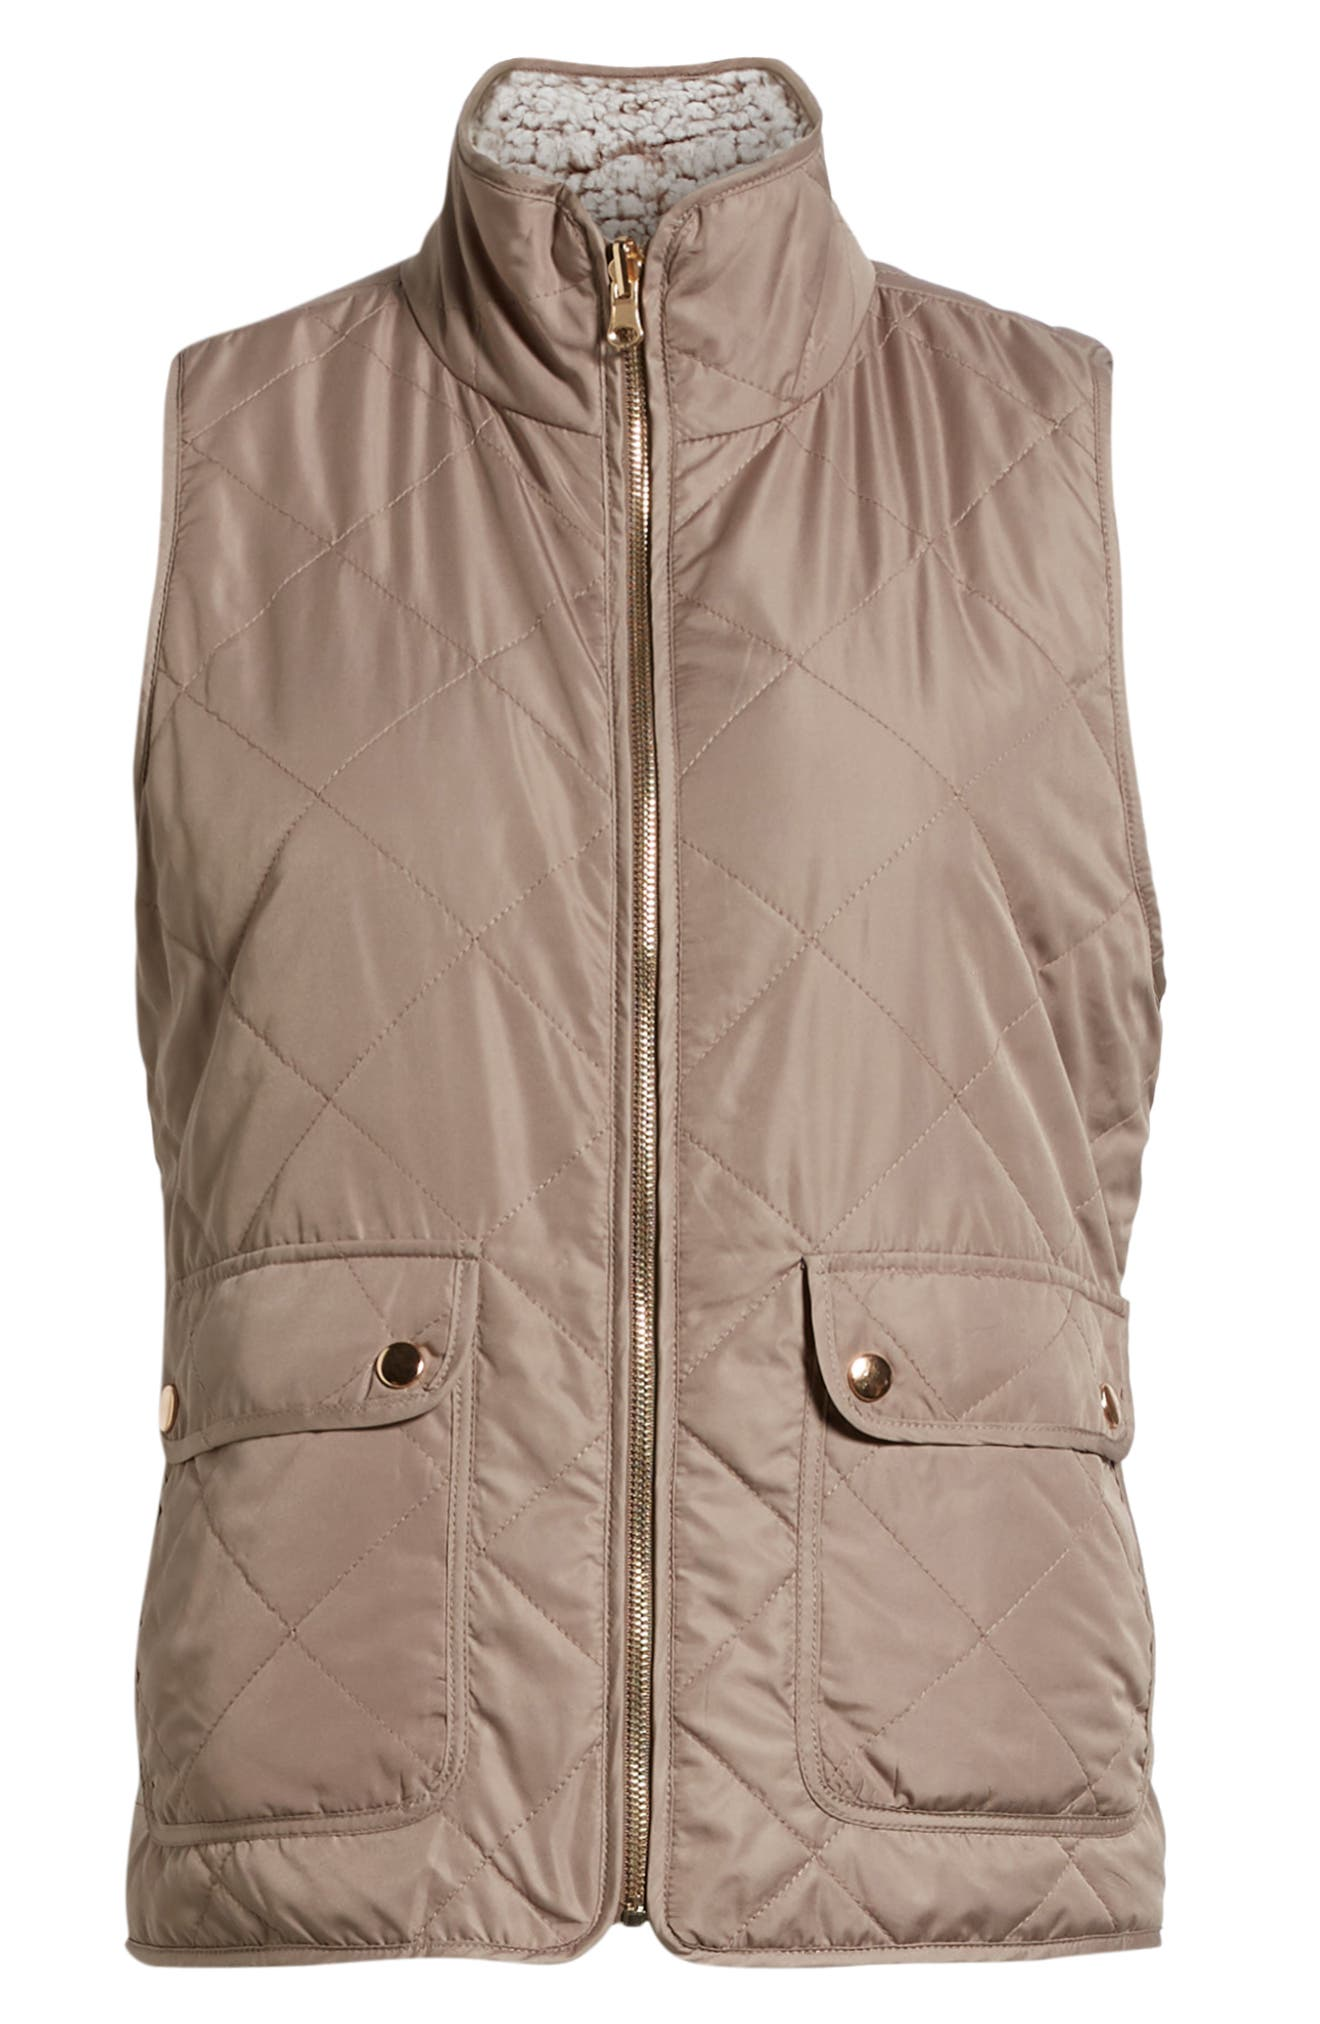 THREAD & SUPPLY, Reversible Fleece Lined Quilted Vest, Alternate thumbnail 7, color, MUSHROOM